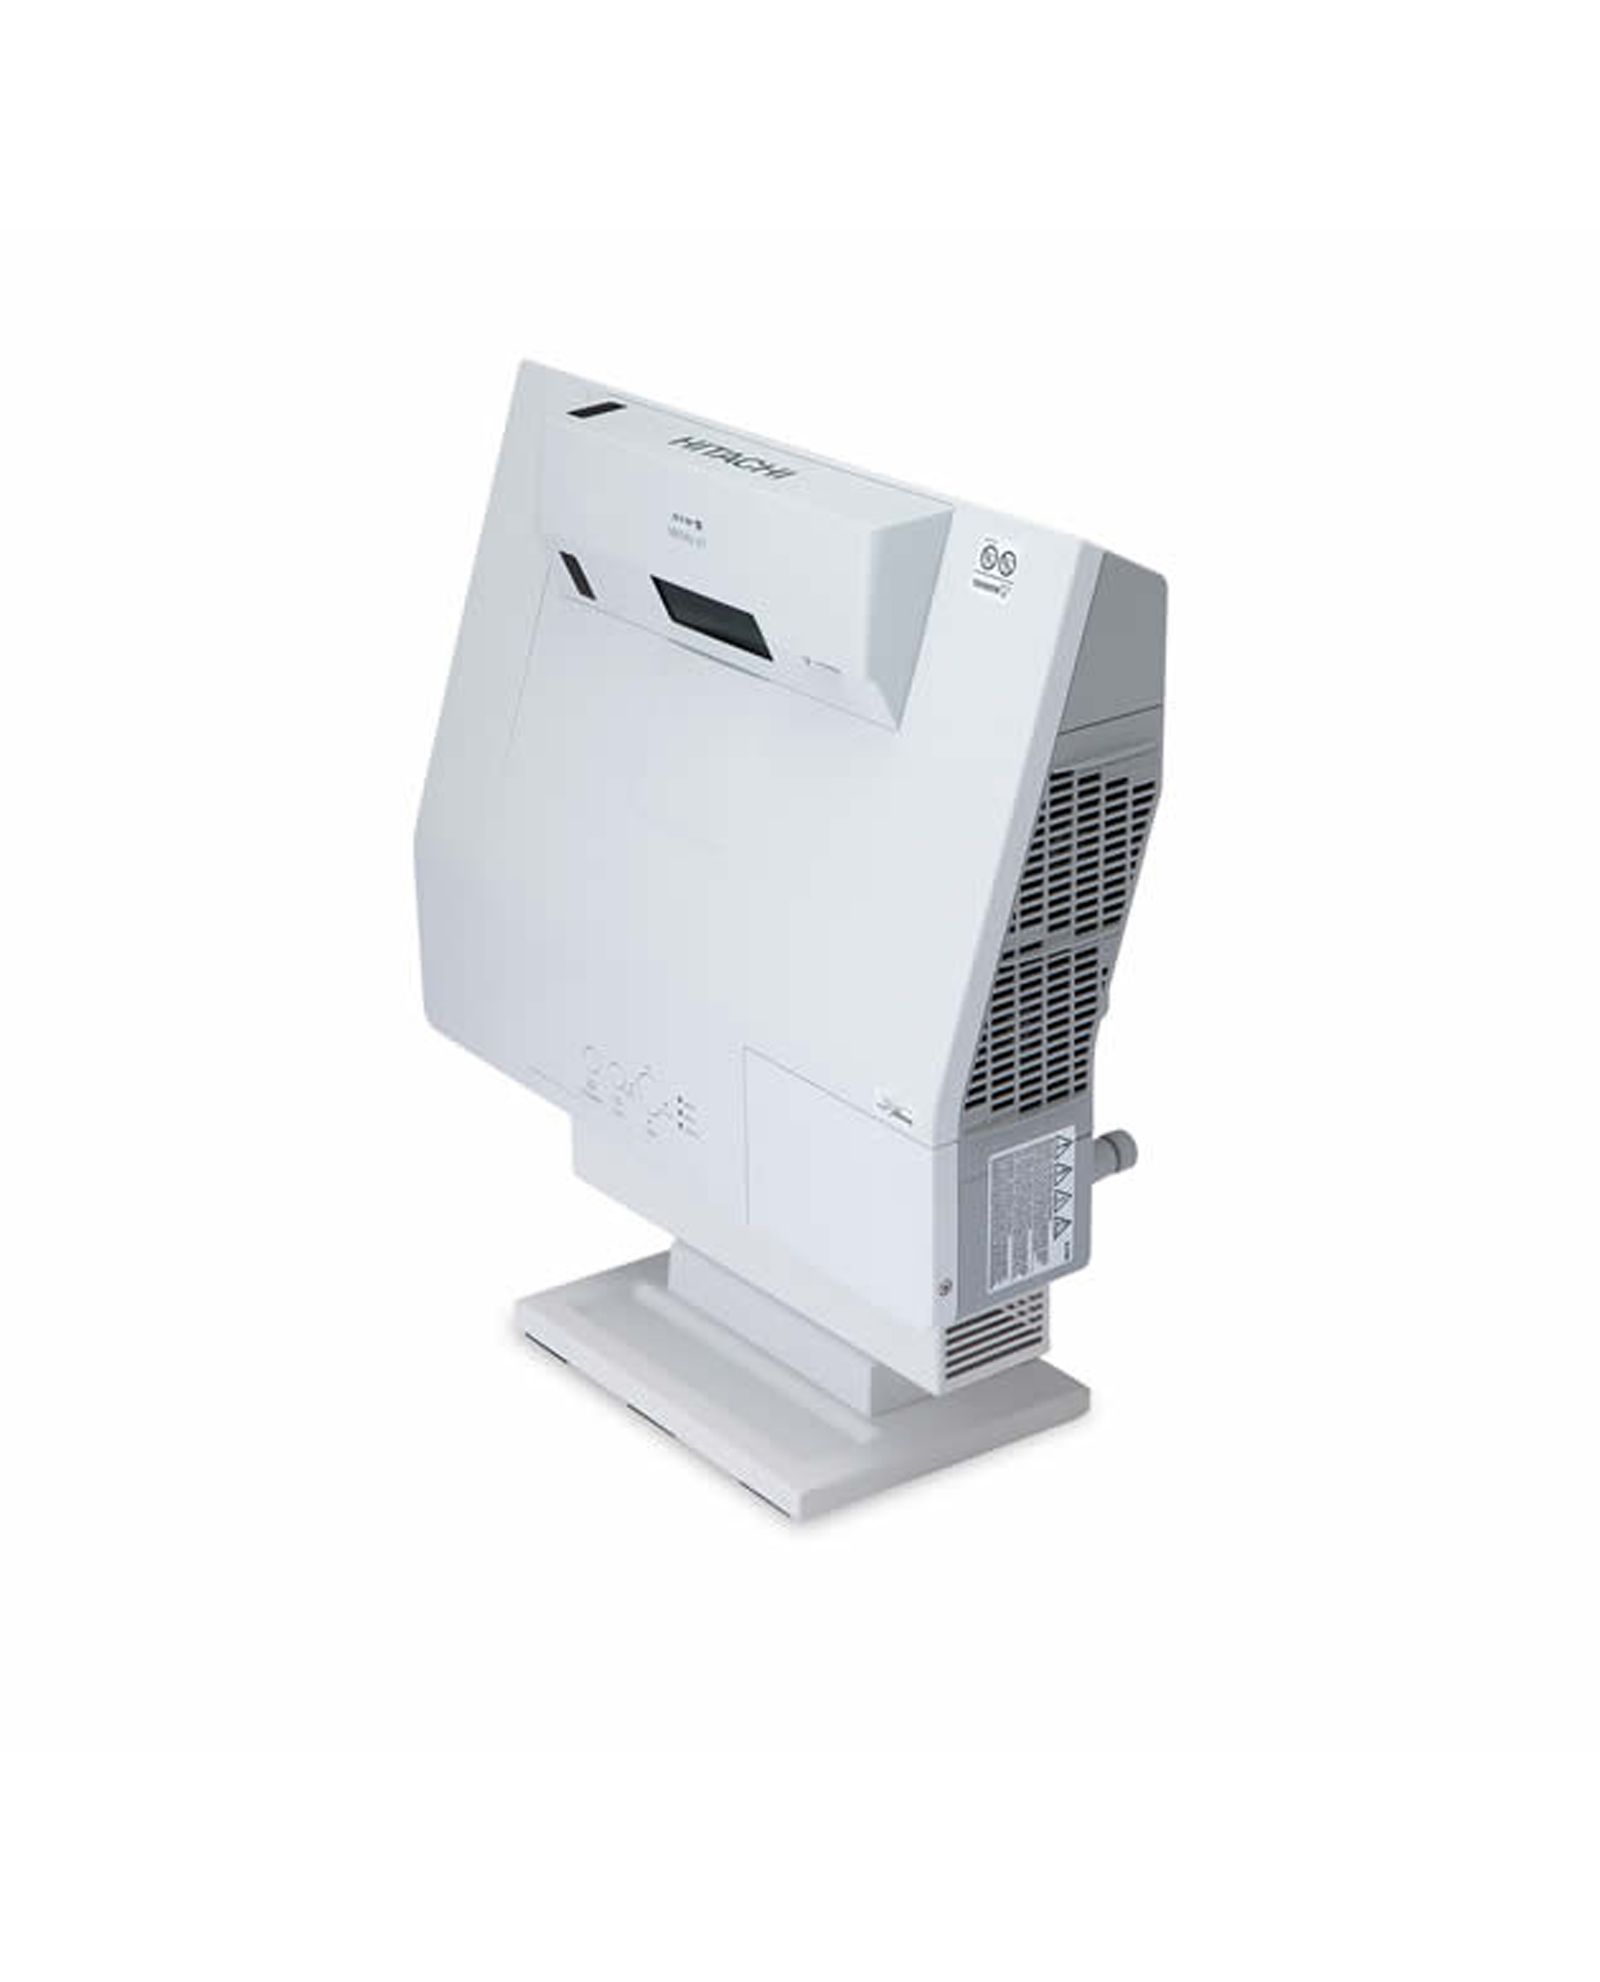 Hitachi CPTW3005WNMF 3,300 ANSI Lumen Interactive Projector - SHOWTECHNIX